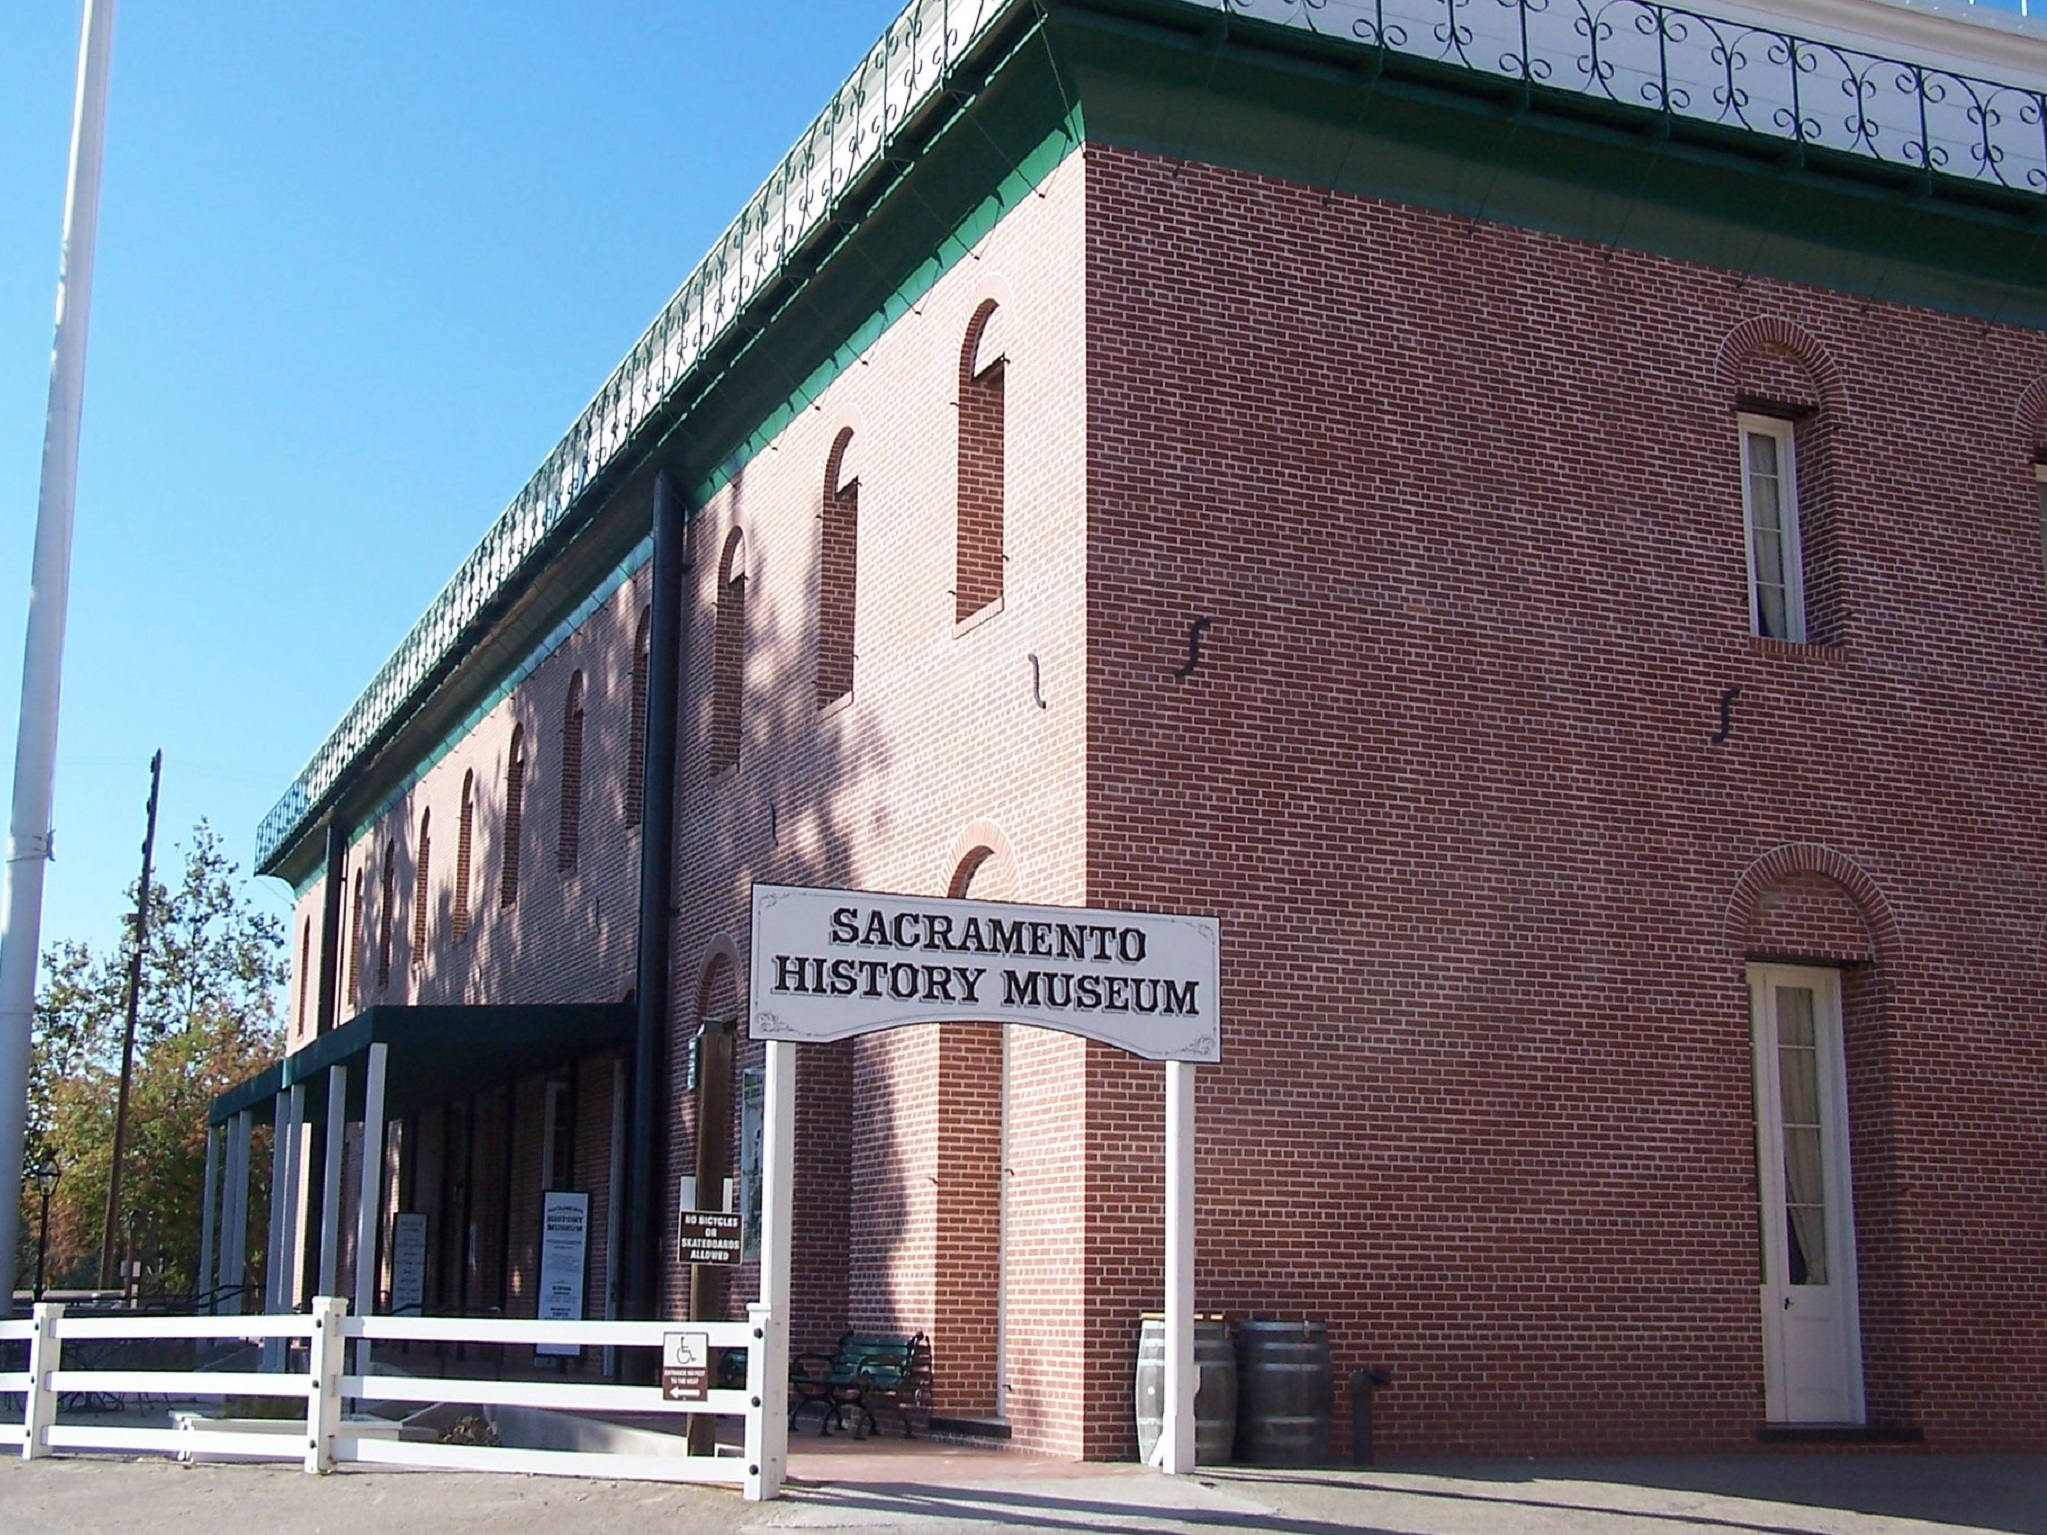 The outside of the brick museum with a wooden sign